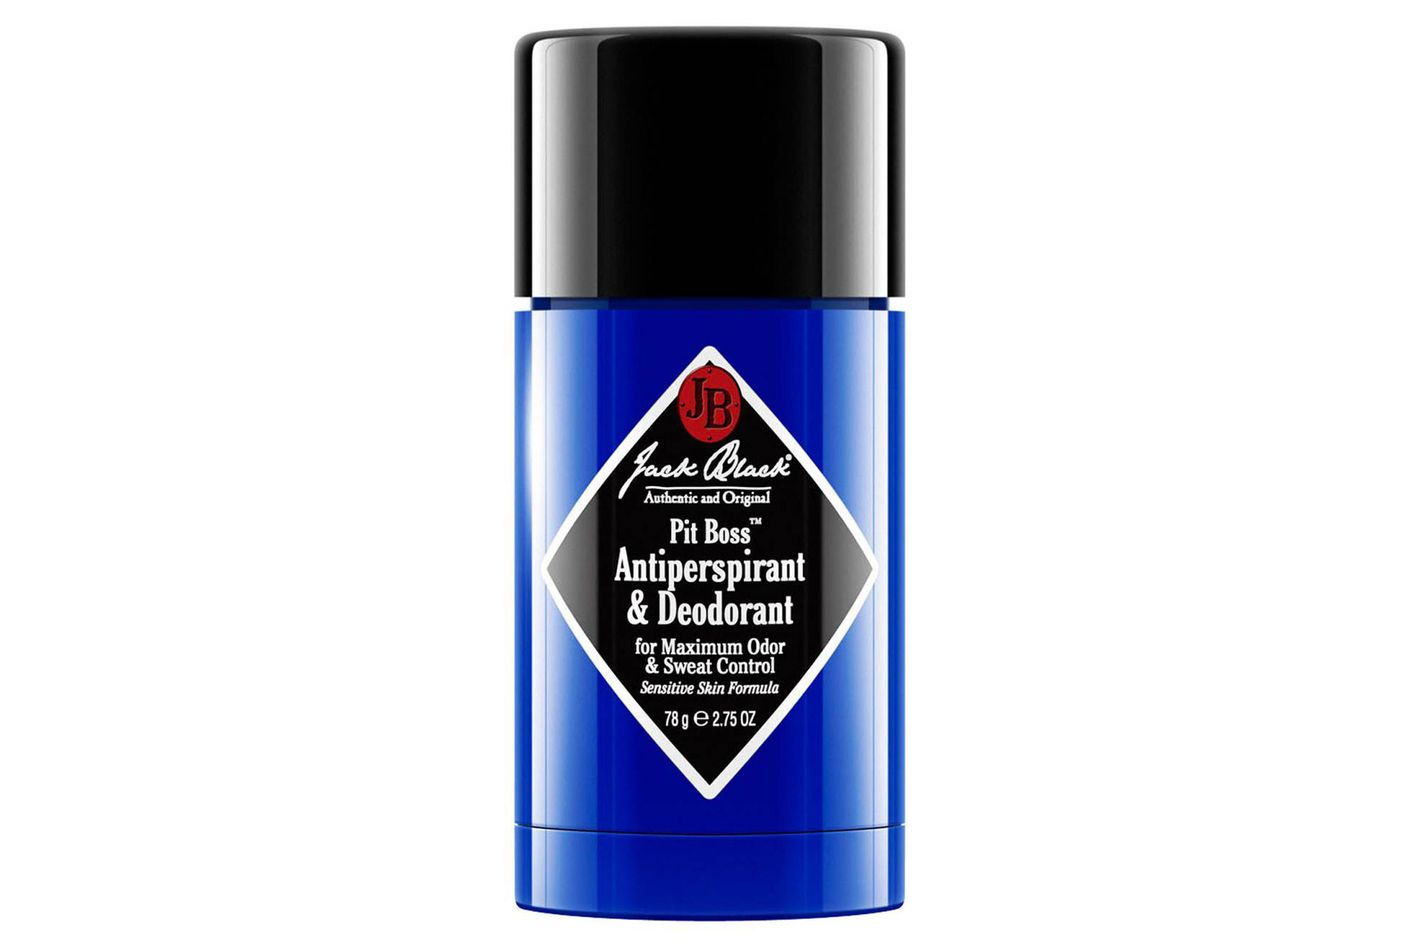 Jack Black Pit Boss Antiperspirant and Deodorant